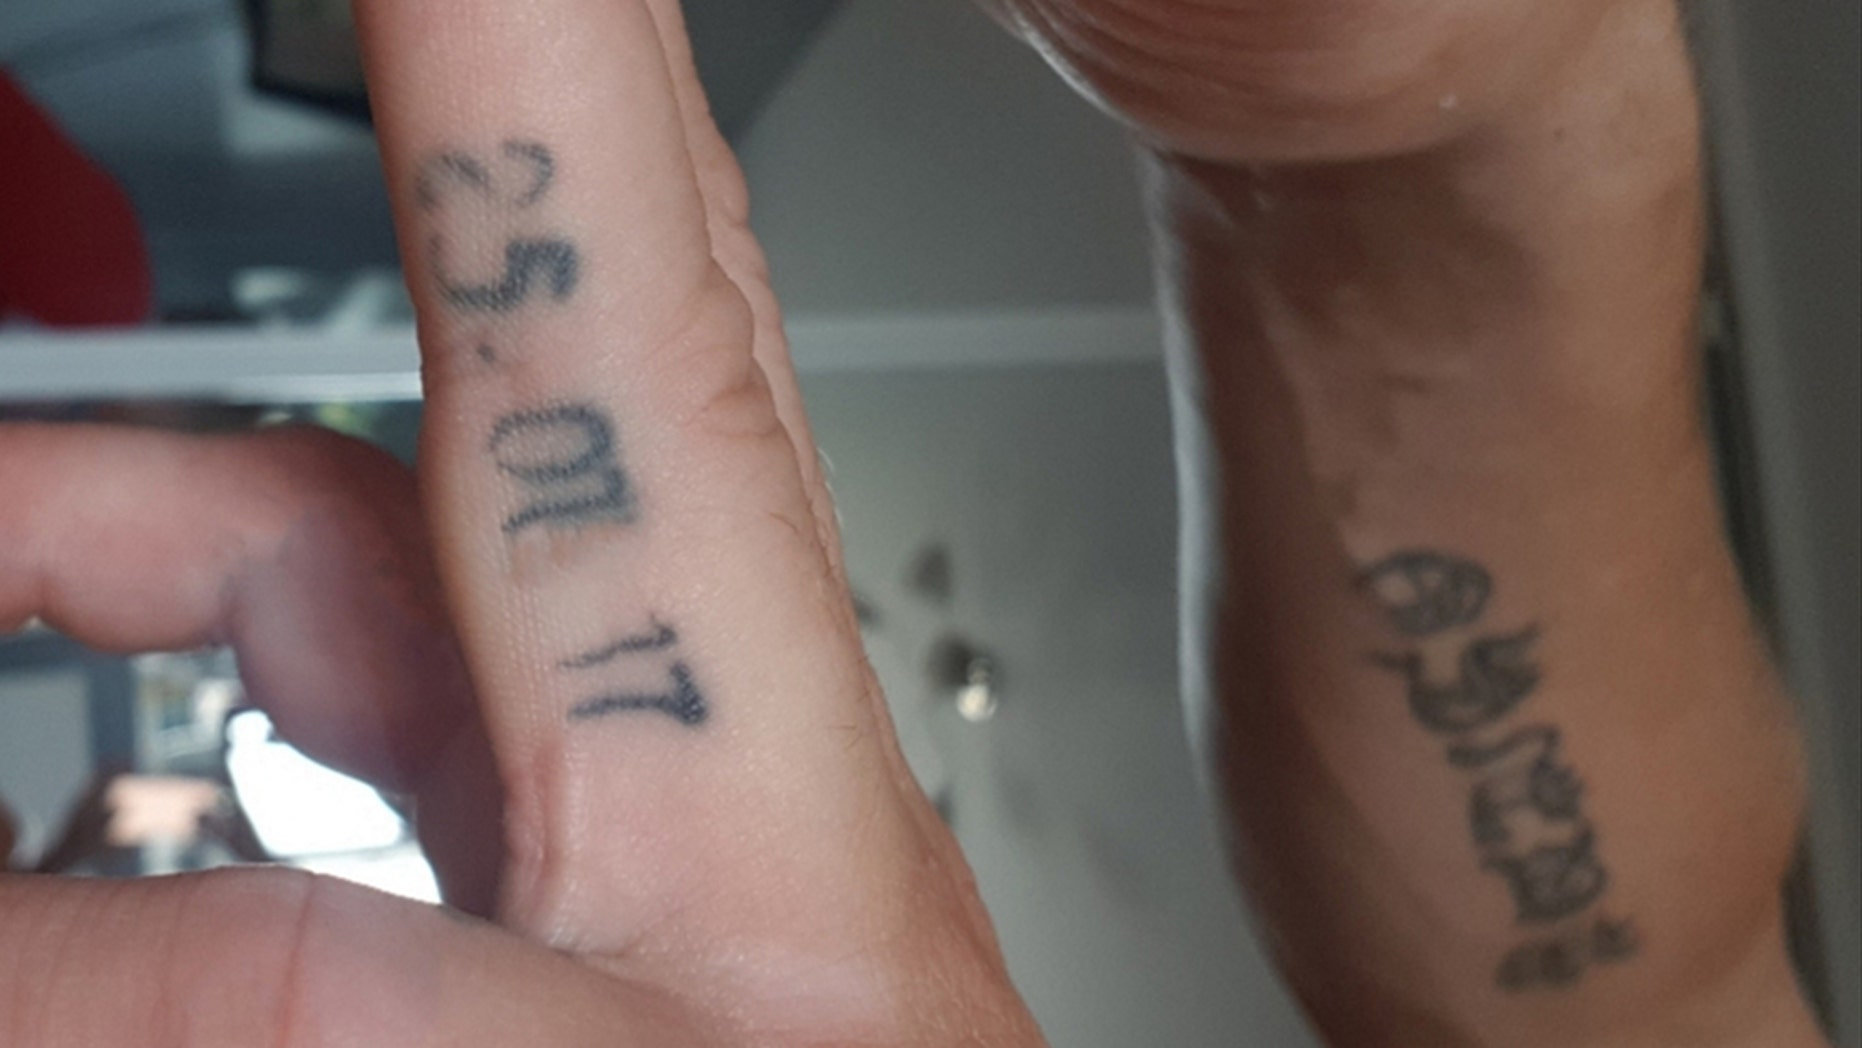 Husband Accidentally Tattoos Wrong Wedding Date On Ring